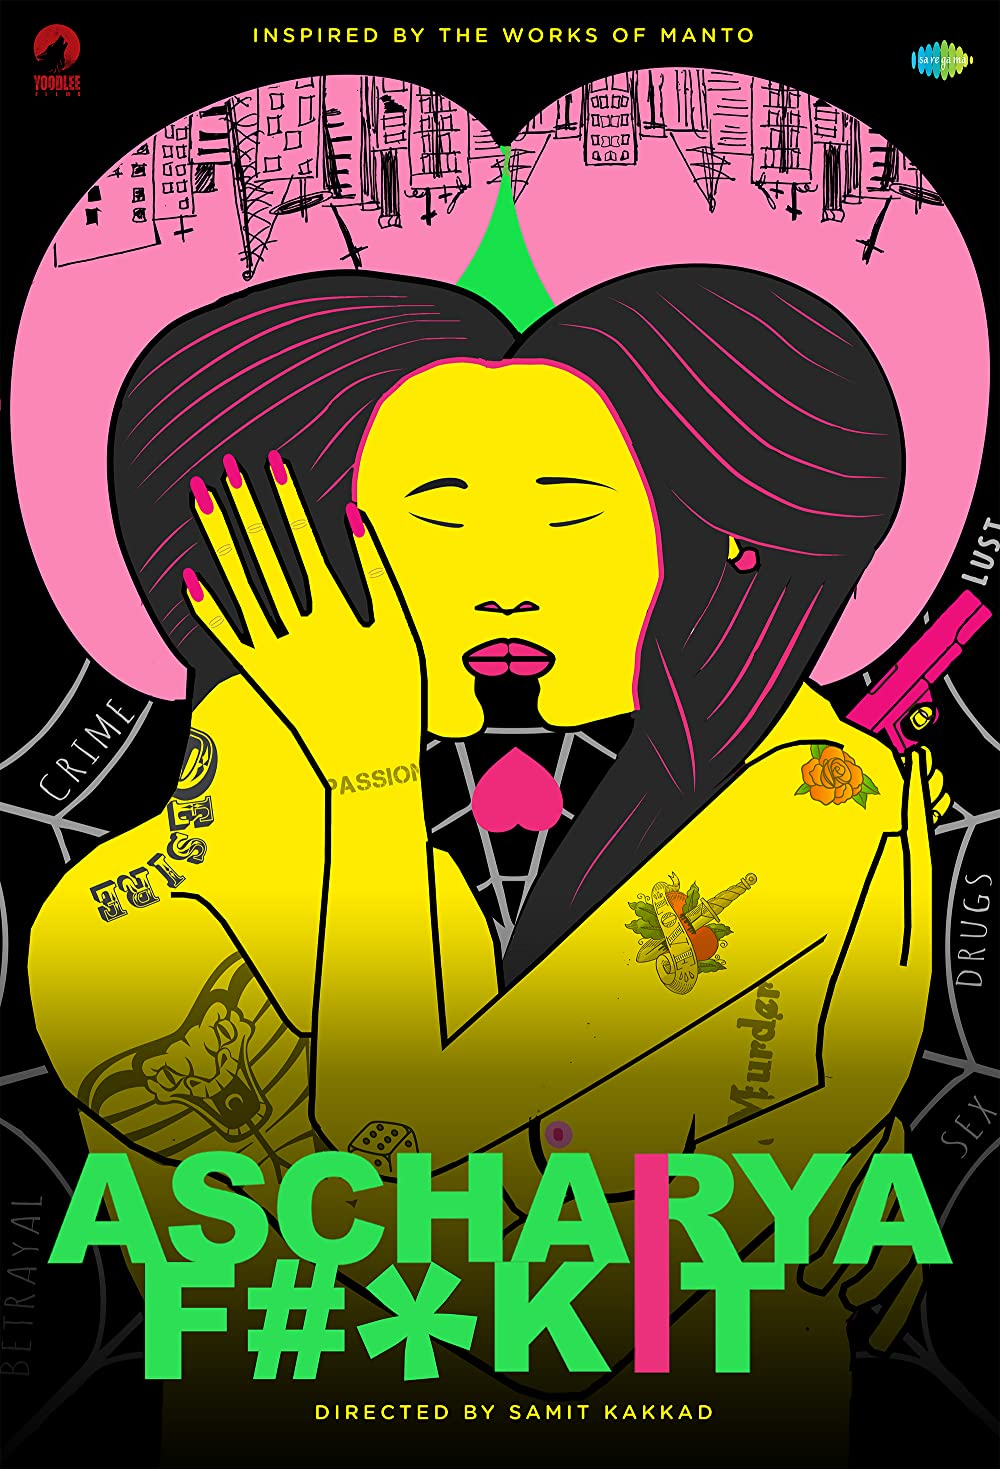 18+ Ascharya Fk It 2021 Hindi 720p UNRATED HDRip ESubs 600MB Download